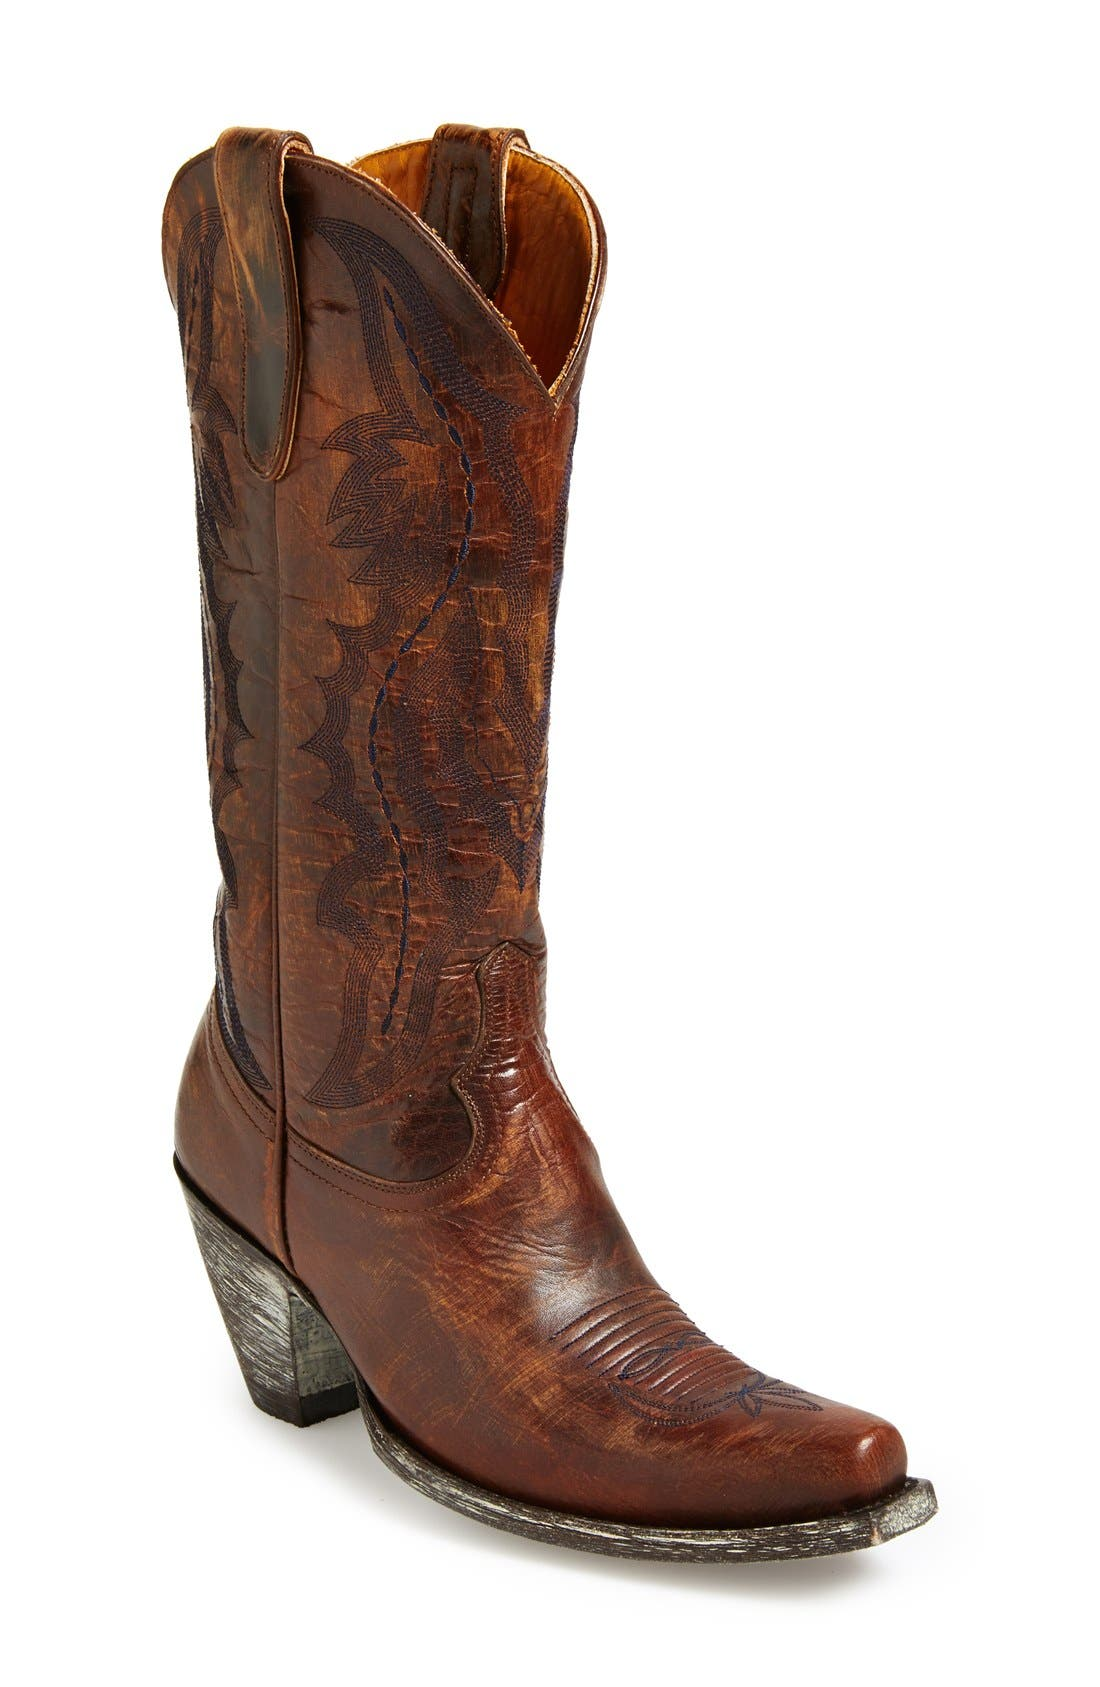 Main Image - Old Gringo 'Rio' Leather Western Boot (Women)